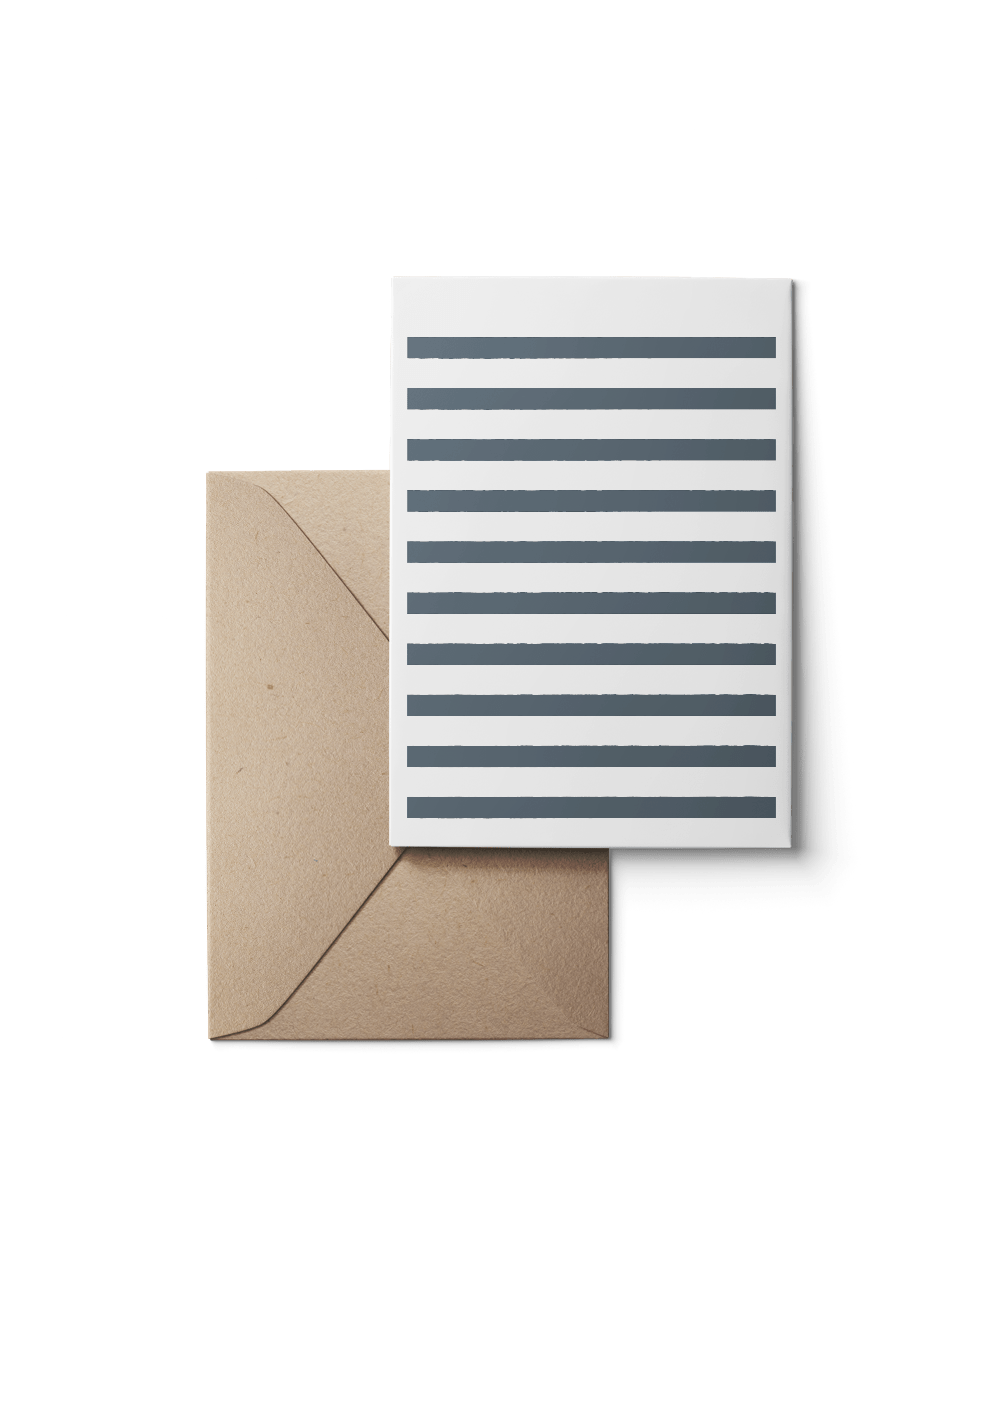 Custom Stripetown, Navy, Eco, 6 Karten Set by Karten Design Fabrik. Supplier of designer Greeting Cards, Gift Wrap, Christmas Cards & Invitations to leading design stores including Connox, Modulor, Magazin & Manufactum.